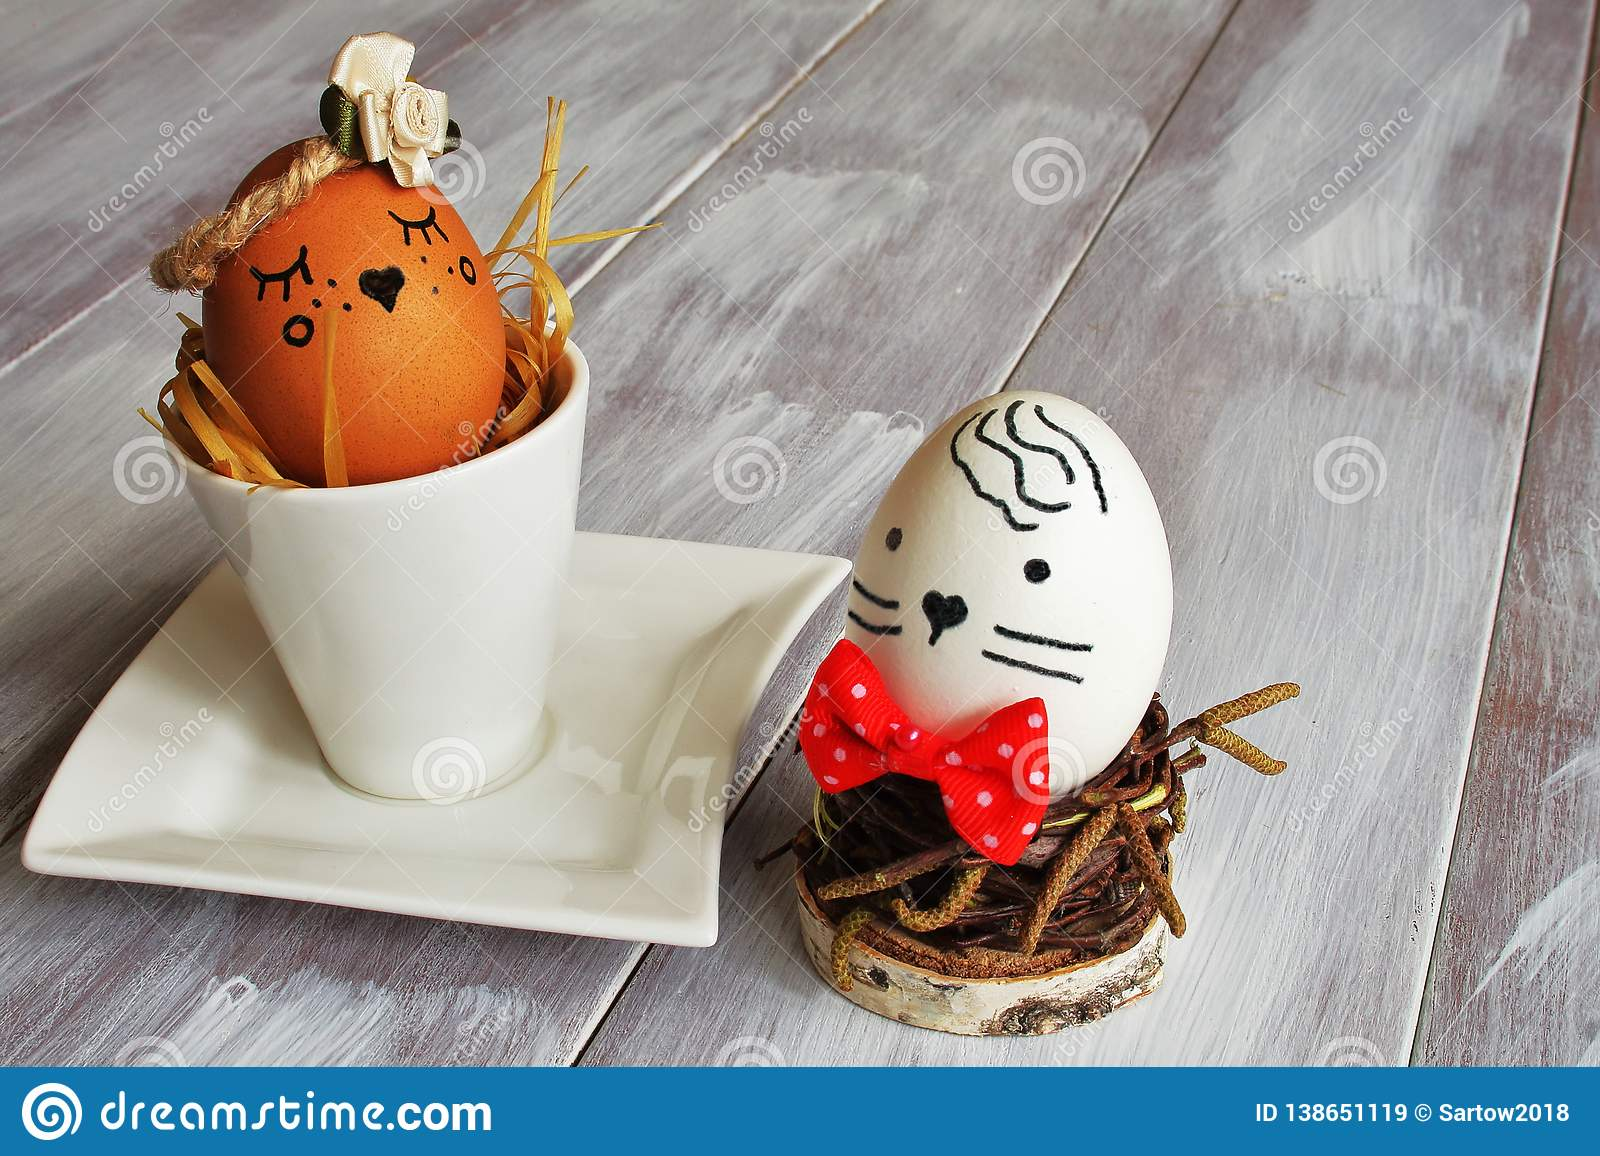 Light brown selfish egg with satin flower in exclusive porcelain coffee pair and white egg with red tie nest from birch twigs on